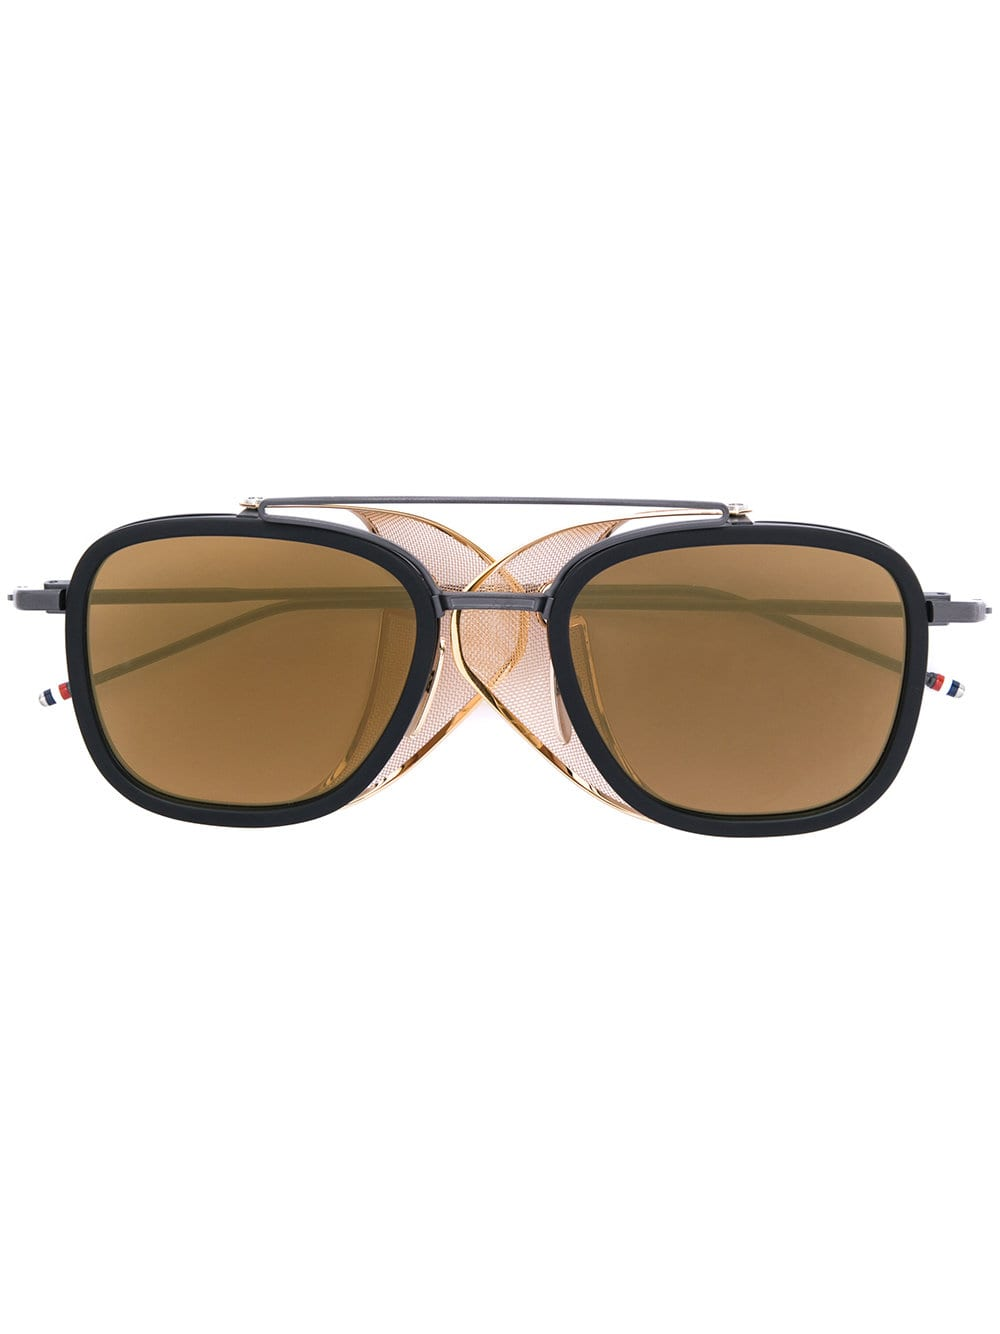 f514fe655c Thom Browne Eyewear Black & Gold Mesh Side Sunglasses, 2019 ...